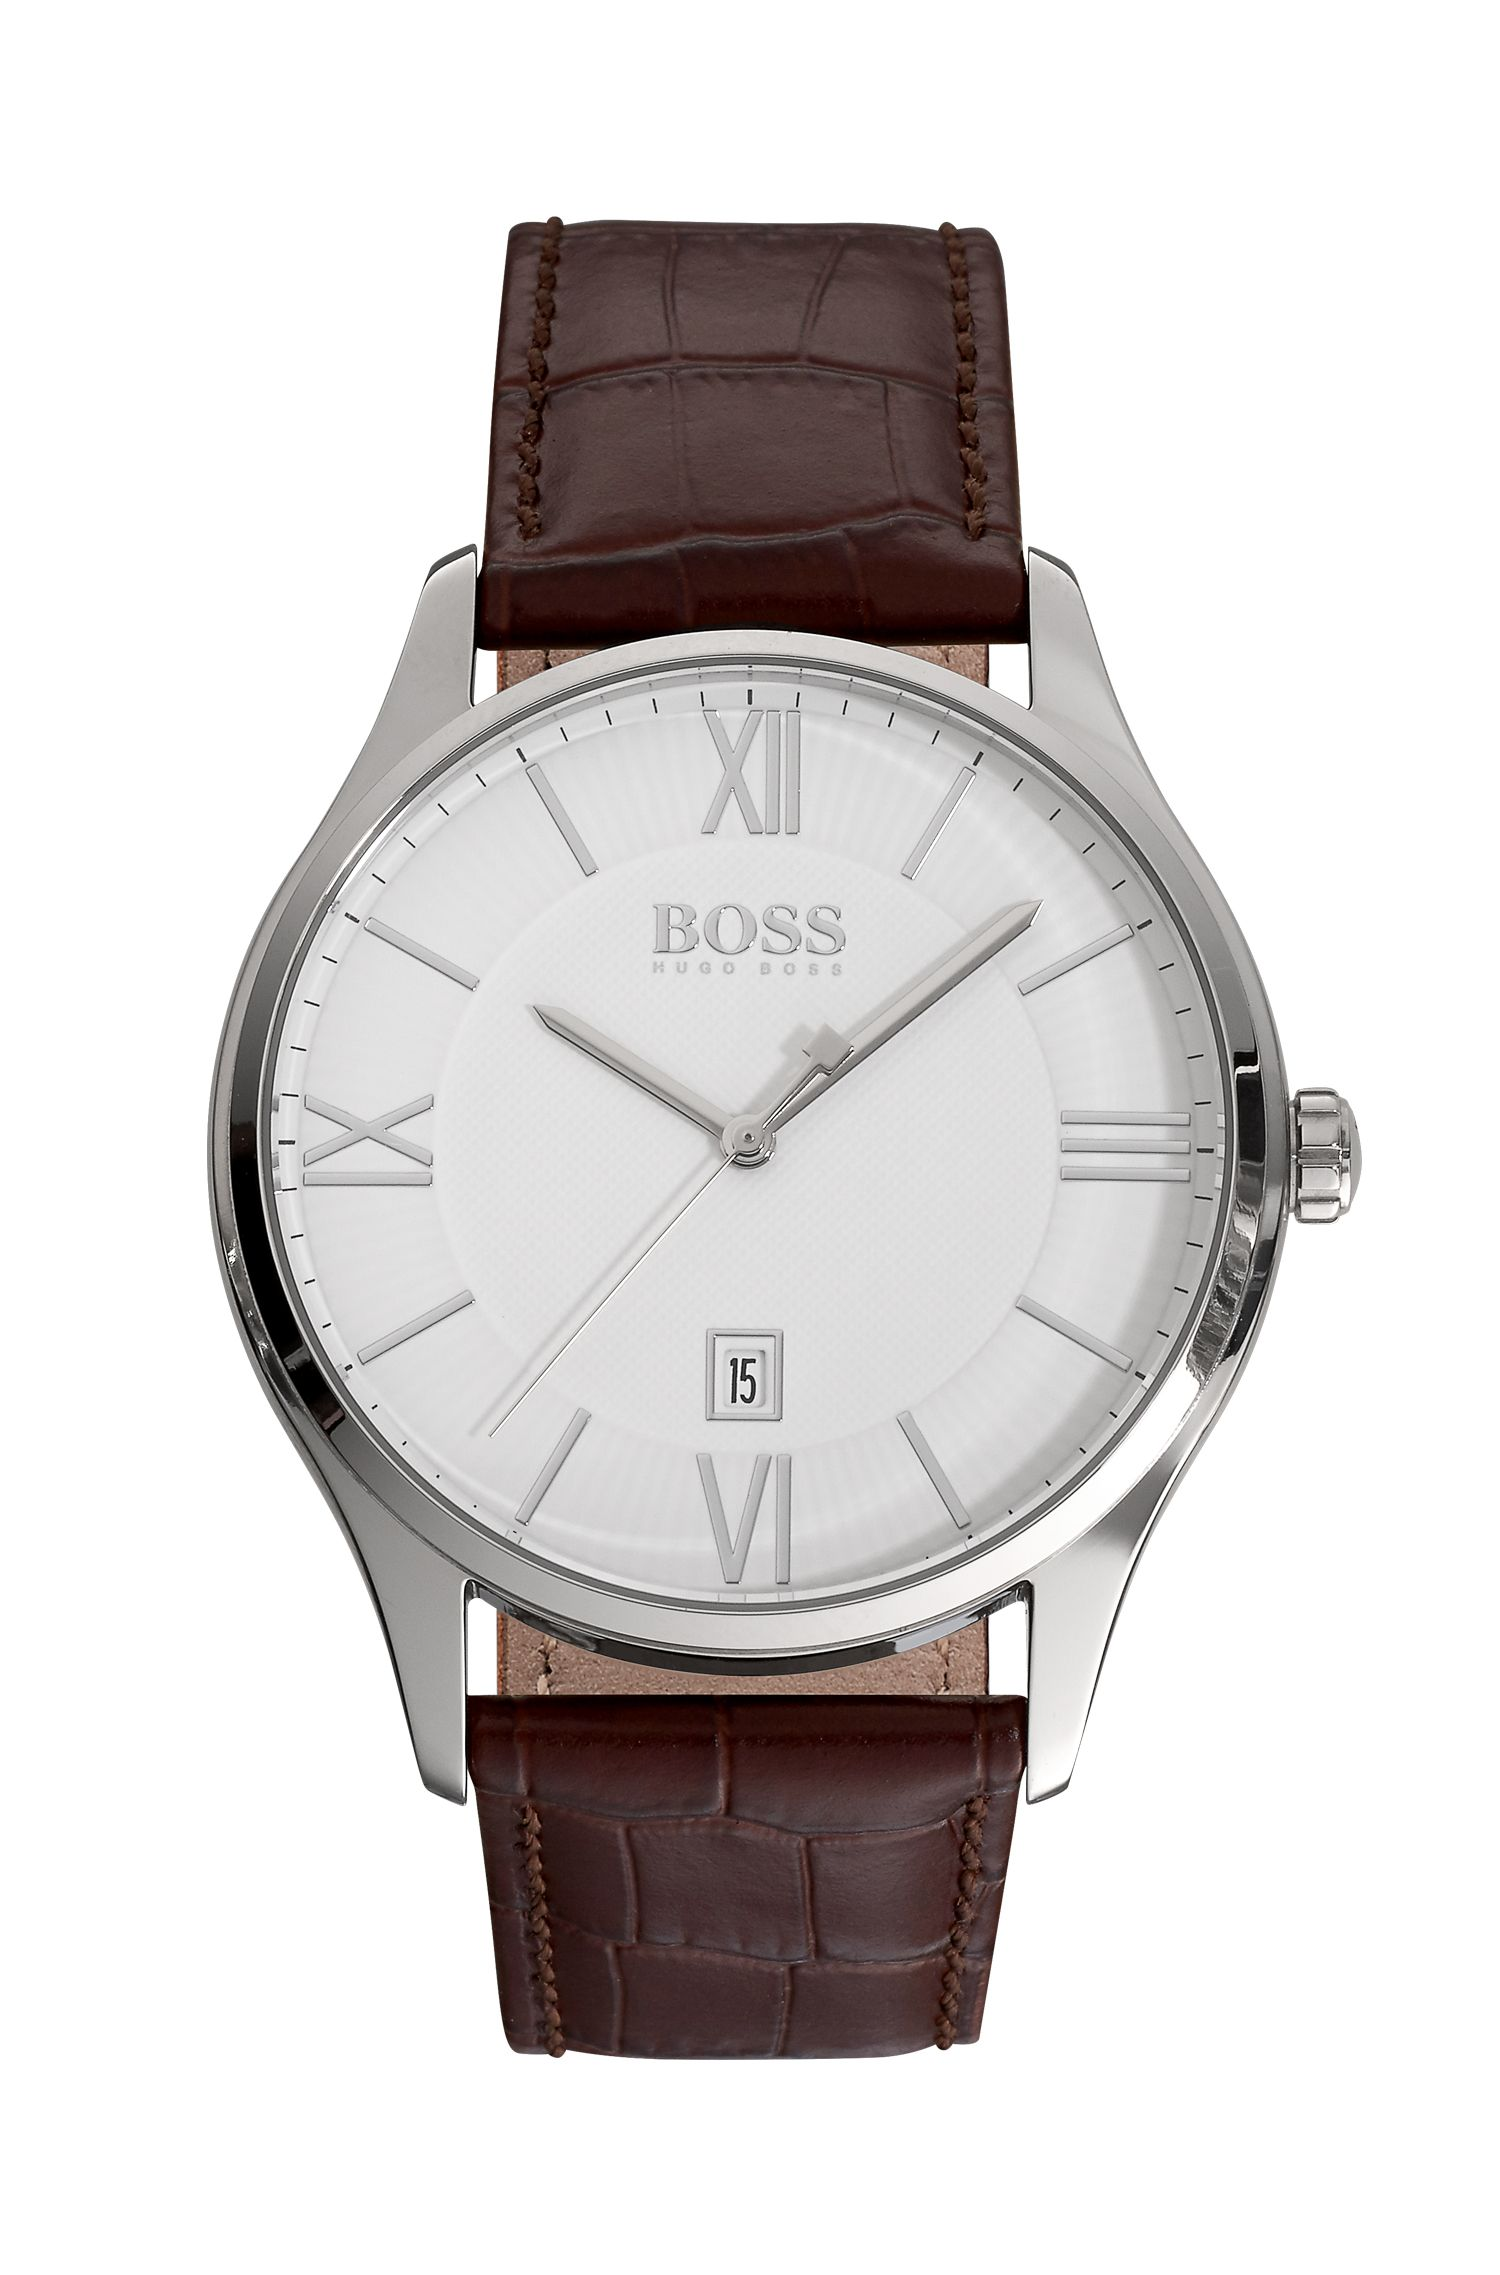 White Dial Watch With Brown Leather Strap | Governor, Assorted-Pre-Pack